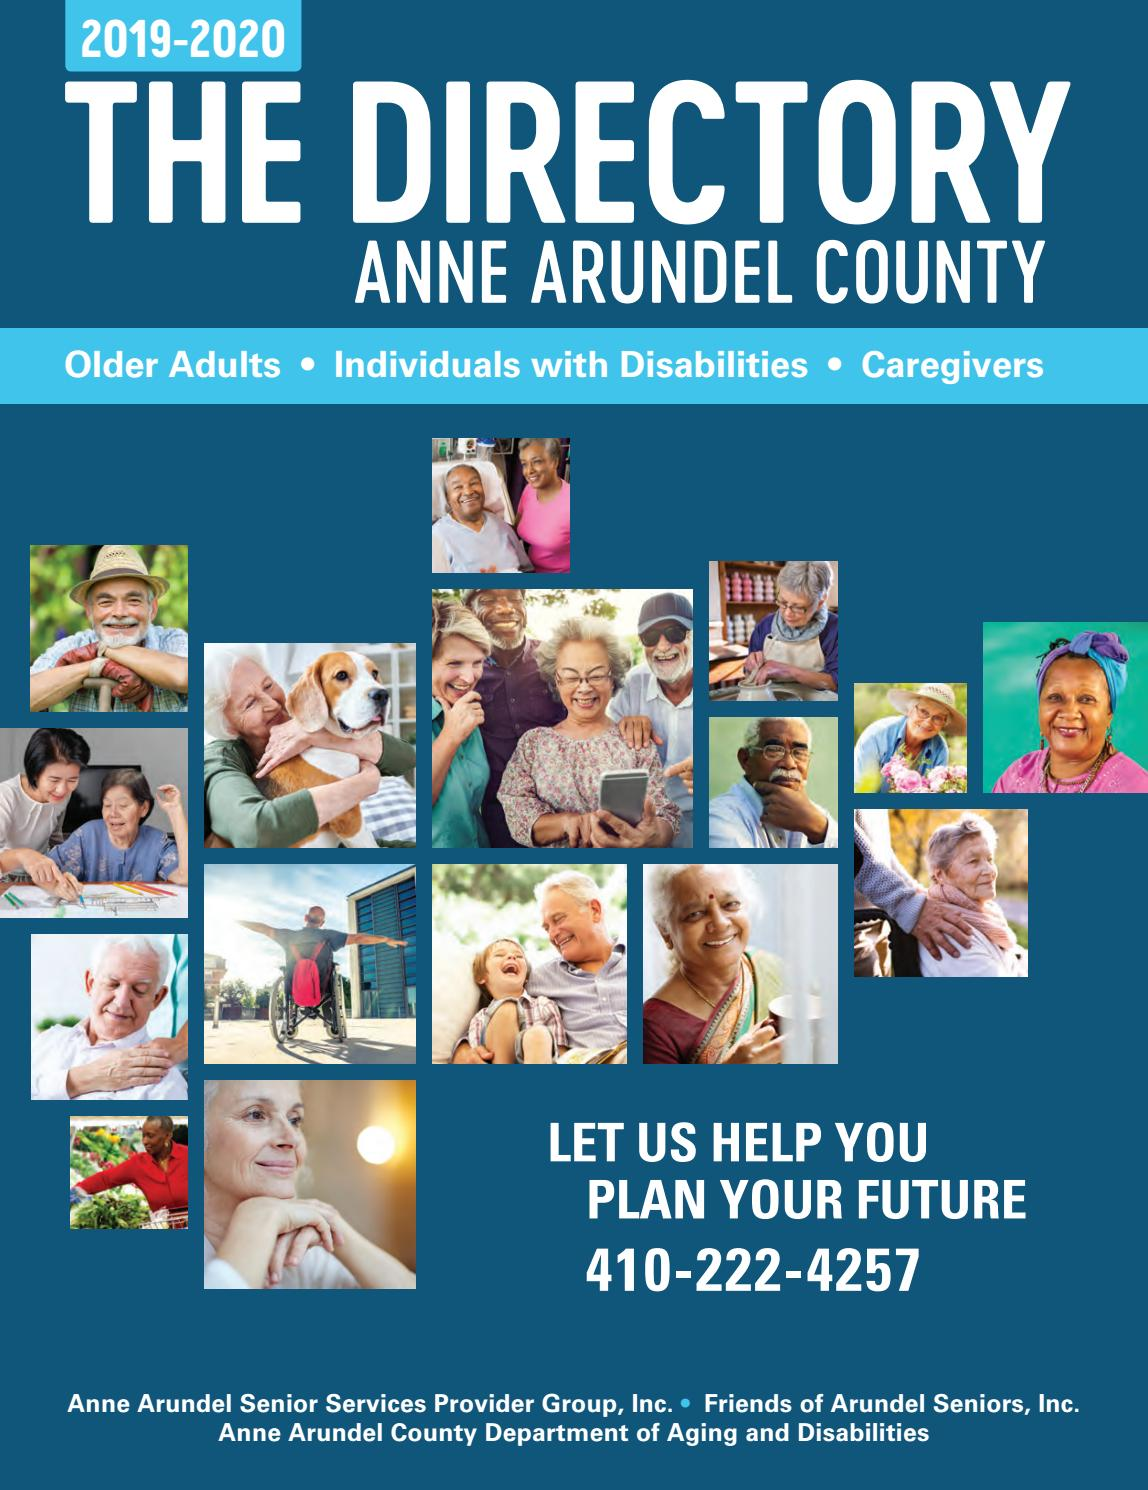 Harford Fair Schedule 2020.Anne Arundel County Services For Seniors Guide 2019 2020 By